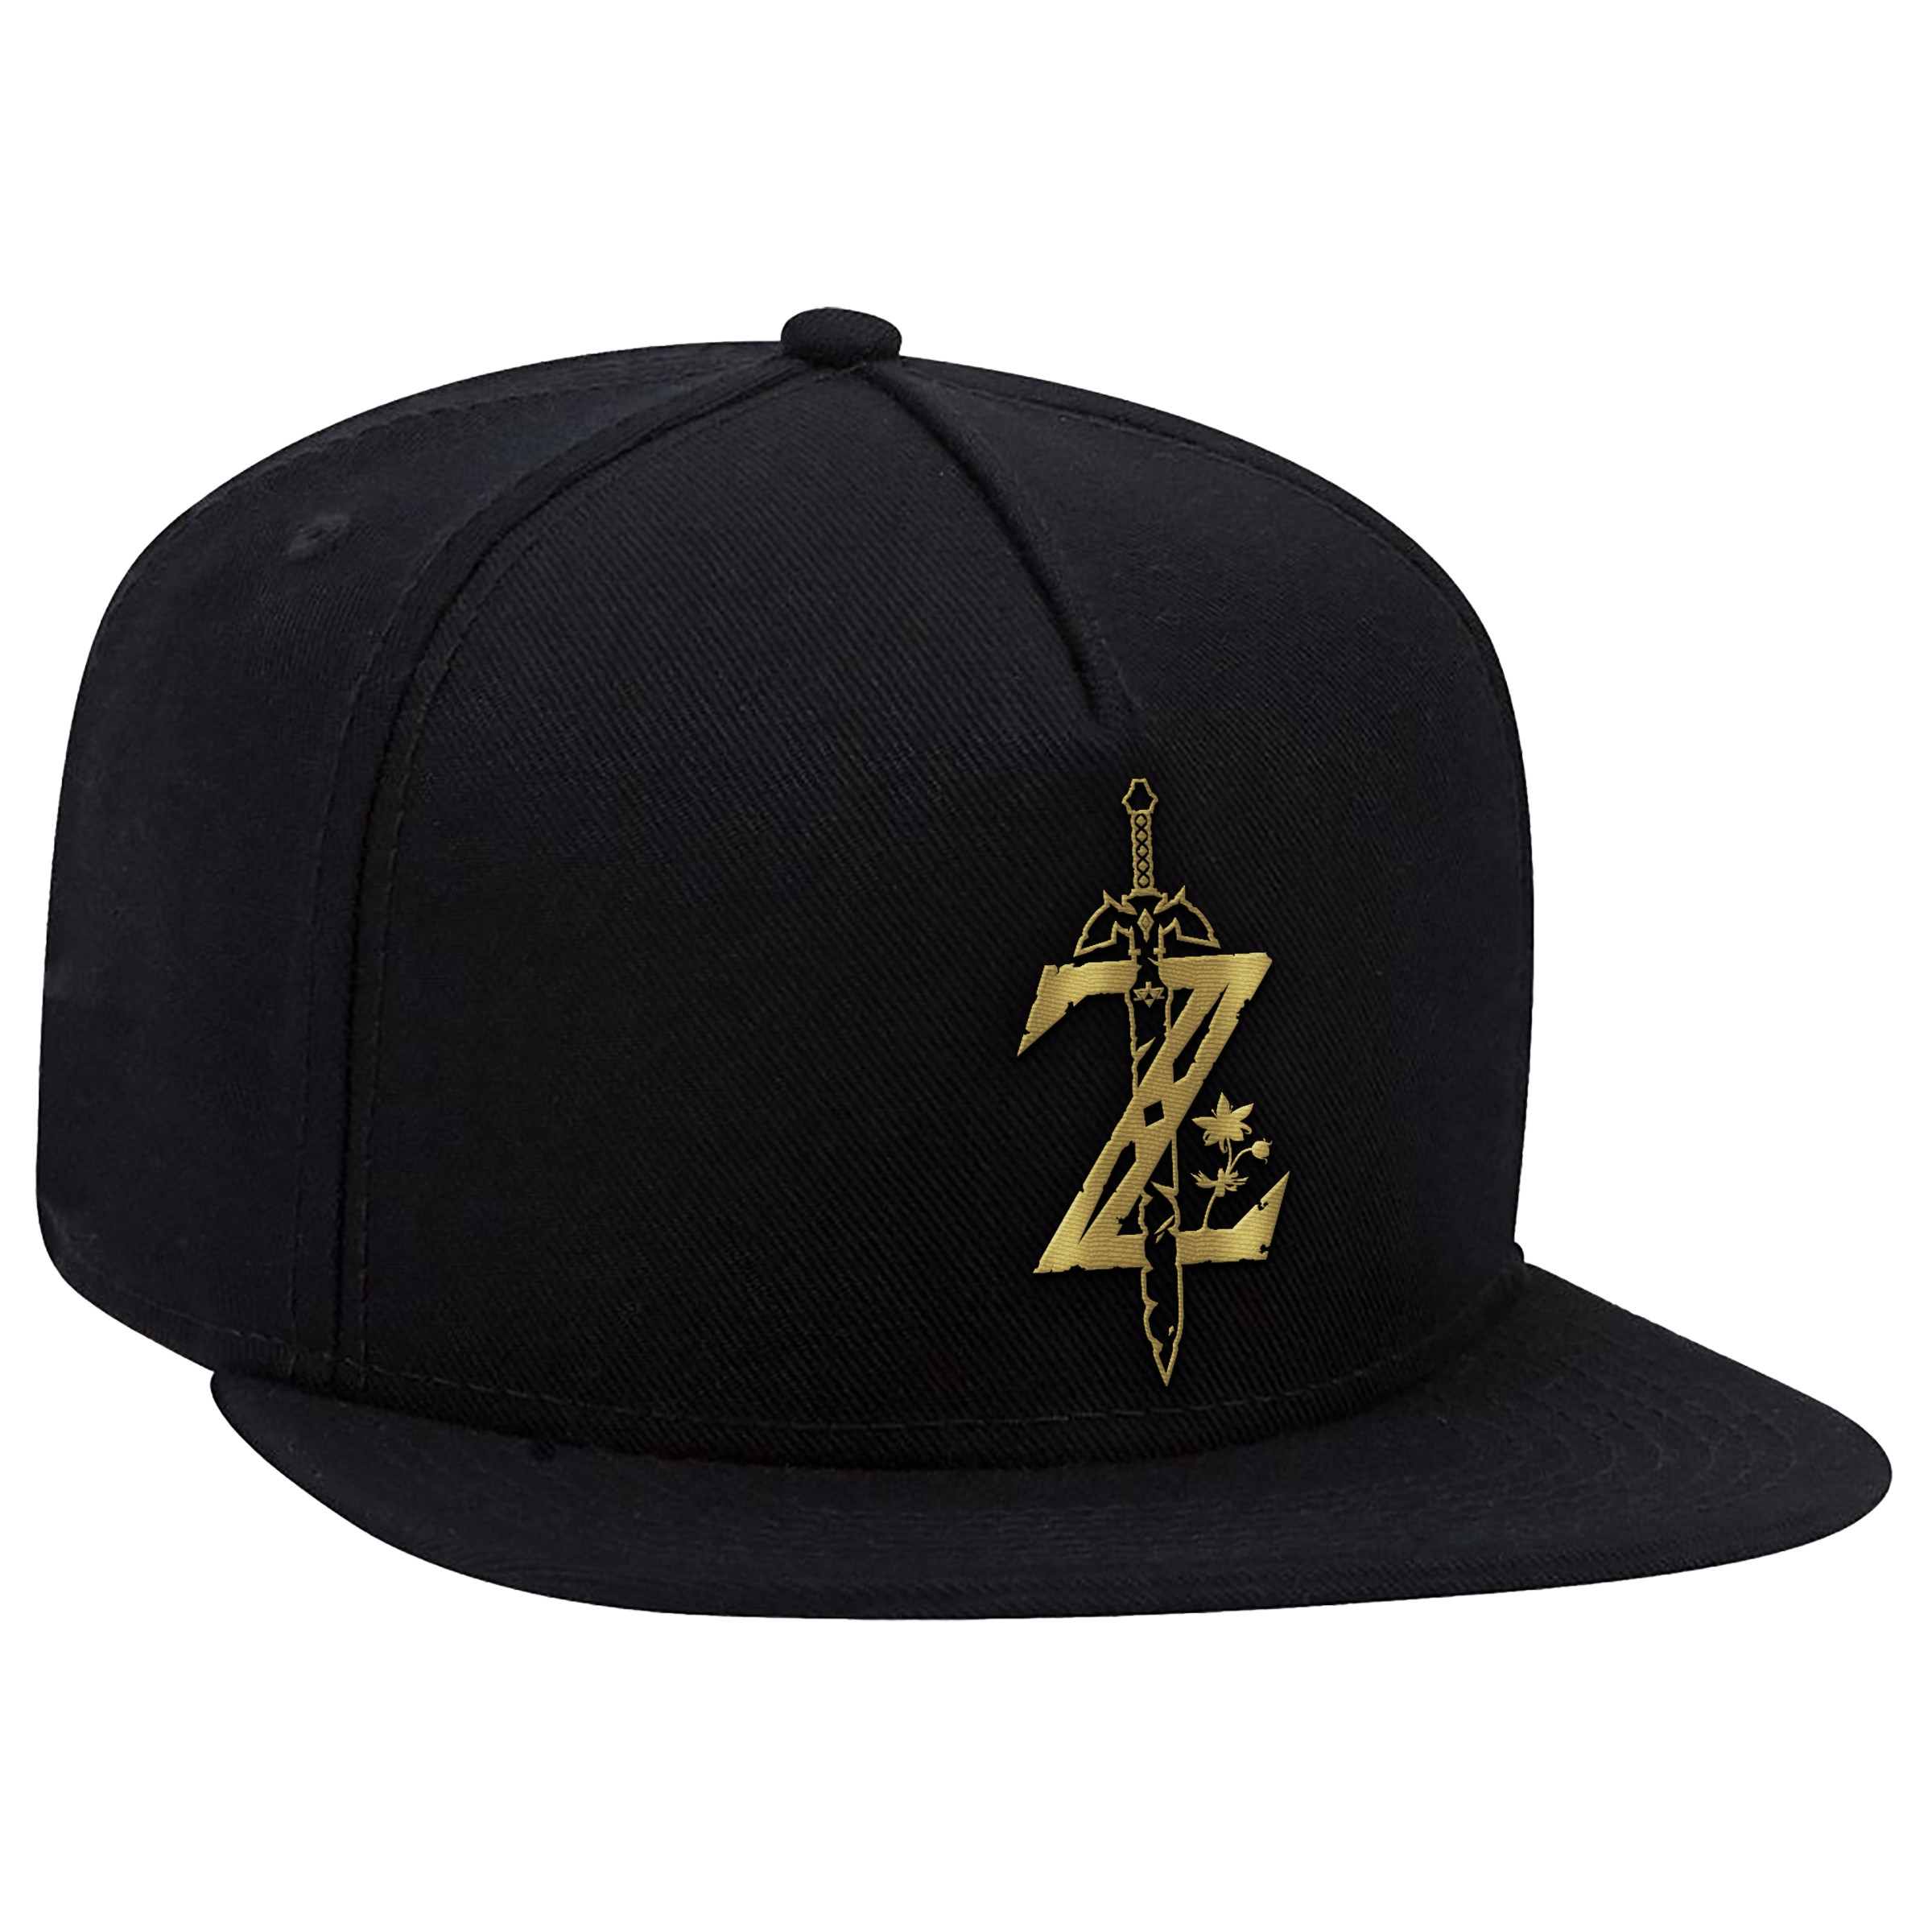 "The Legend of Zelda: Breath of the Wild ""Z Sword"" Flat Bill Hat - Officially Licensed by Nintendo"